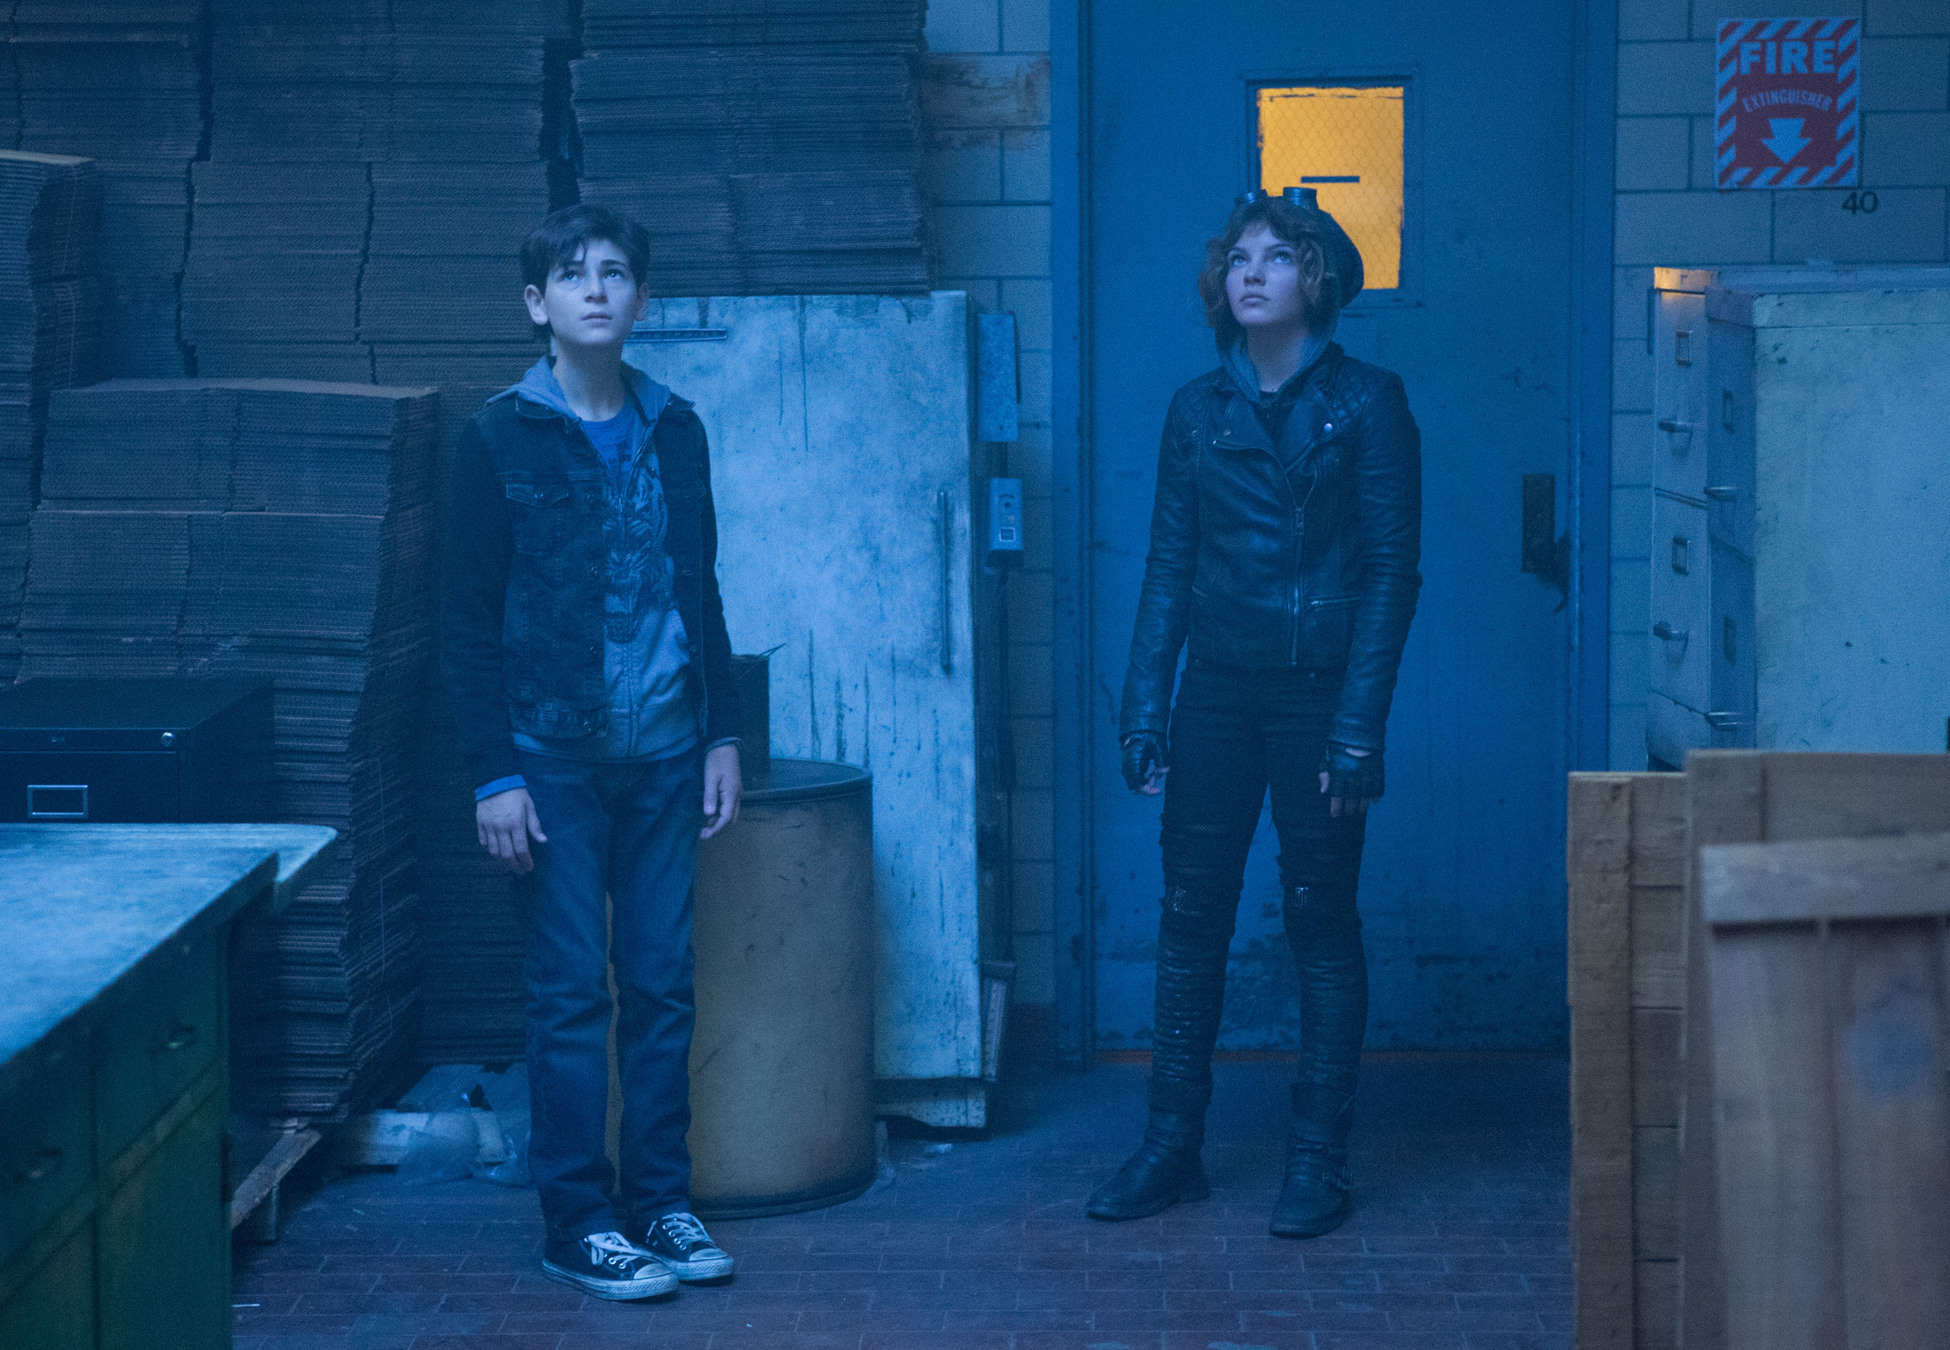 Gotham' Season 1 Fall Finale – 9 New Stills From Episode 10